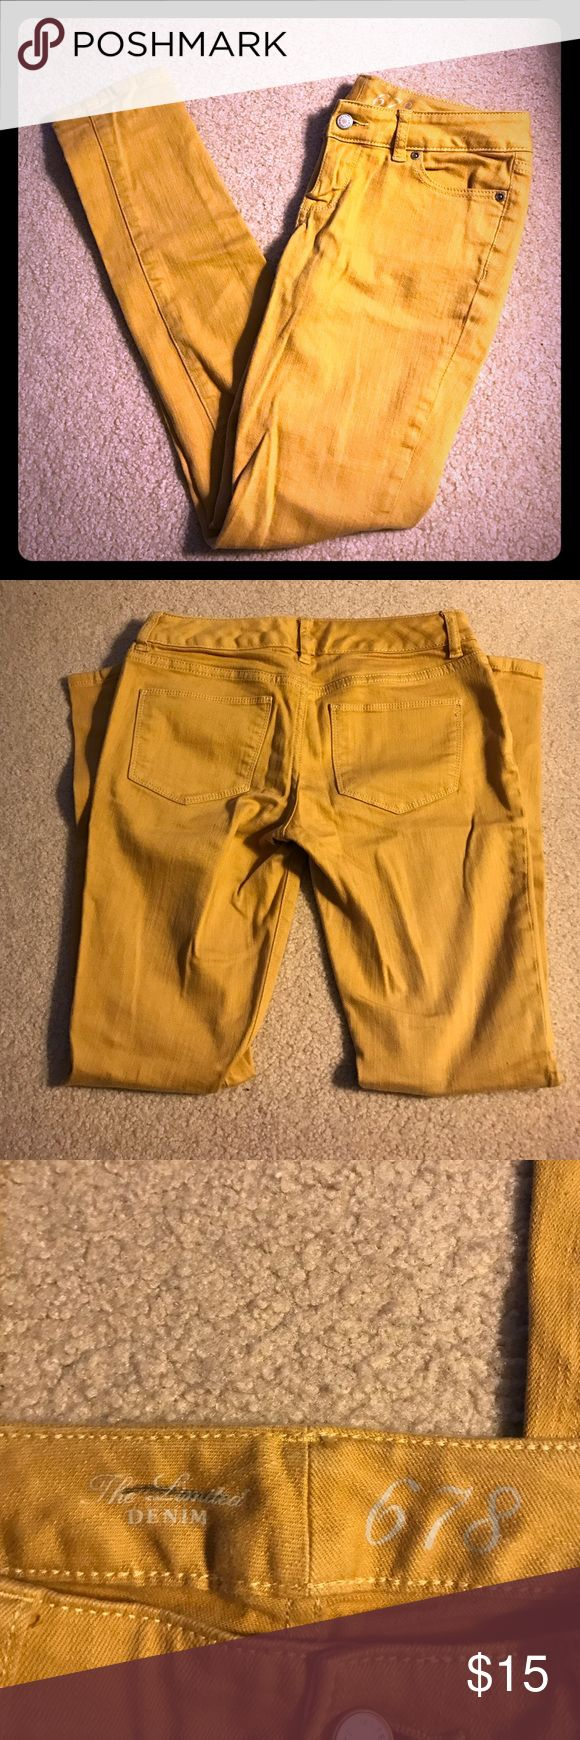 Limited 678 mustard jeans! These jeans are great, just in need of a good ironing! Perfect mustard yellow for fall and winter. Skinny leg, good amount of stretch. In great condition! The Limited Jeans Skinny